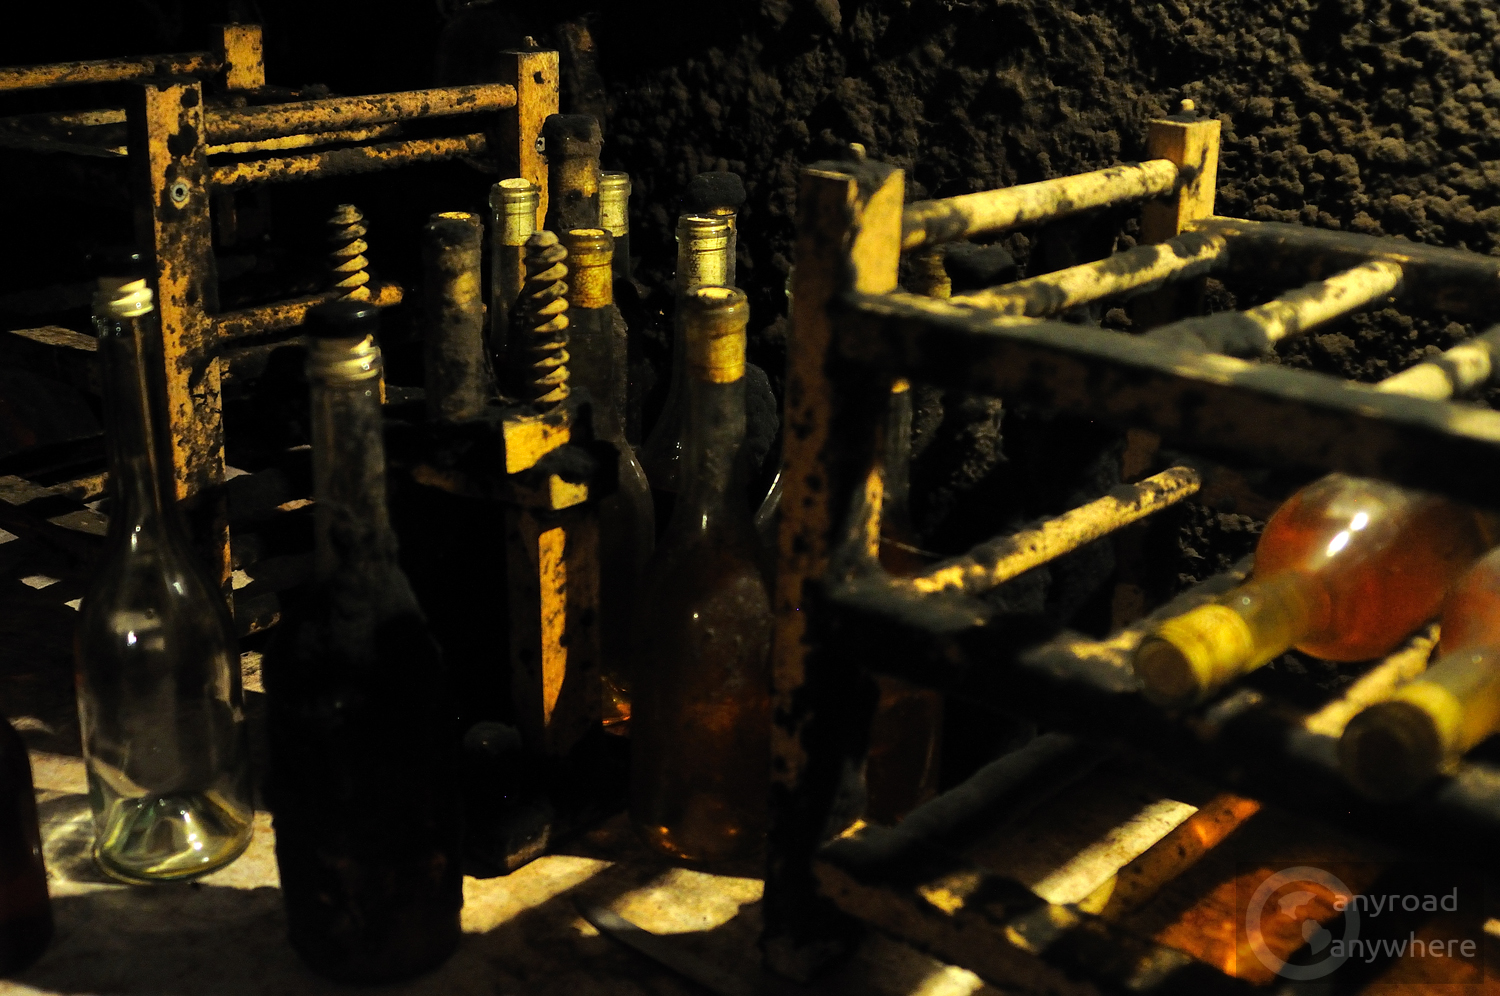 The black 'noble mould' that covers cellar walls and bottles is an important part of the wine-making process